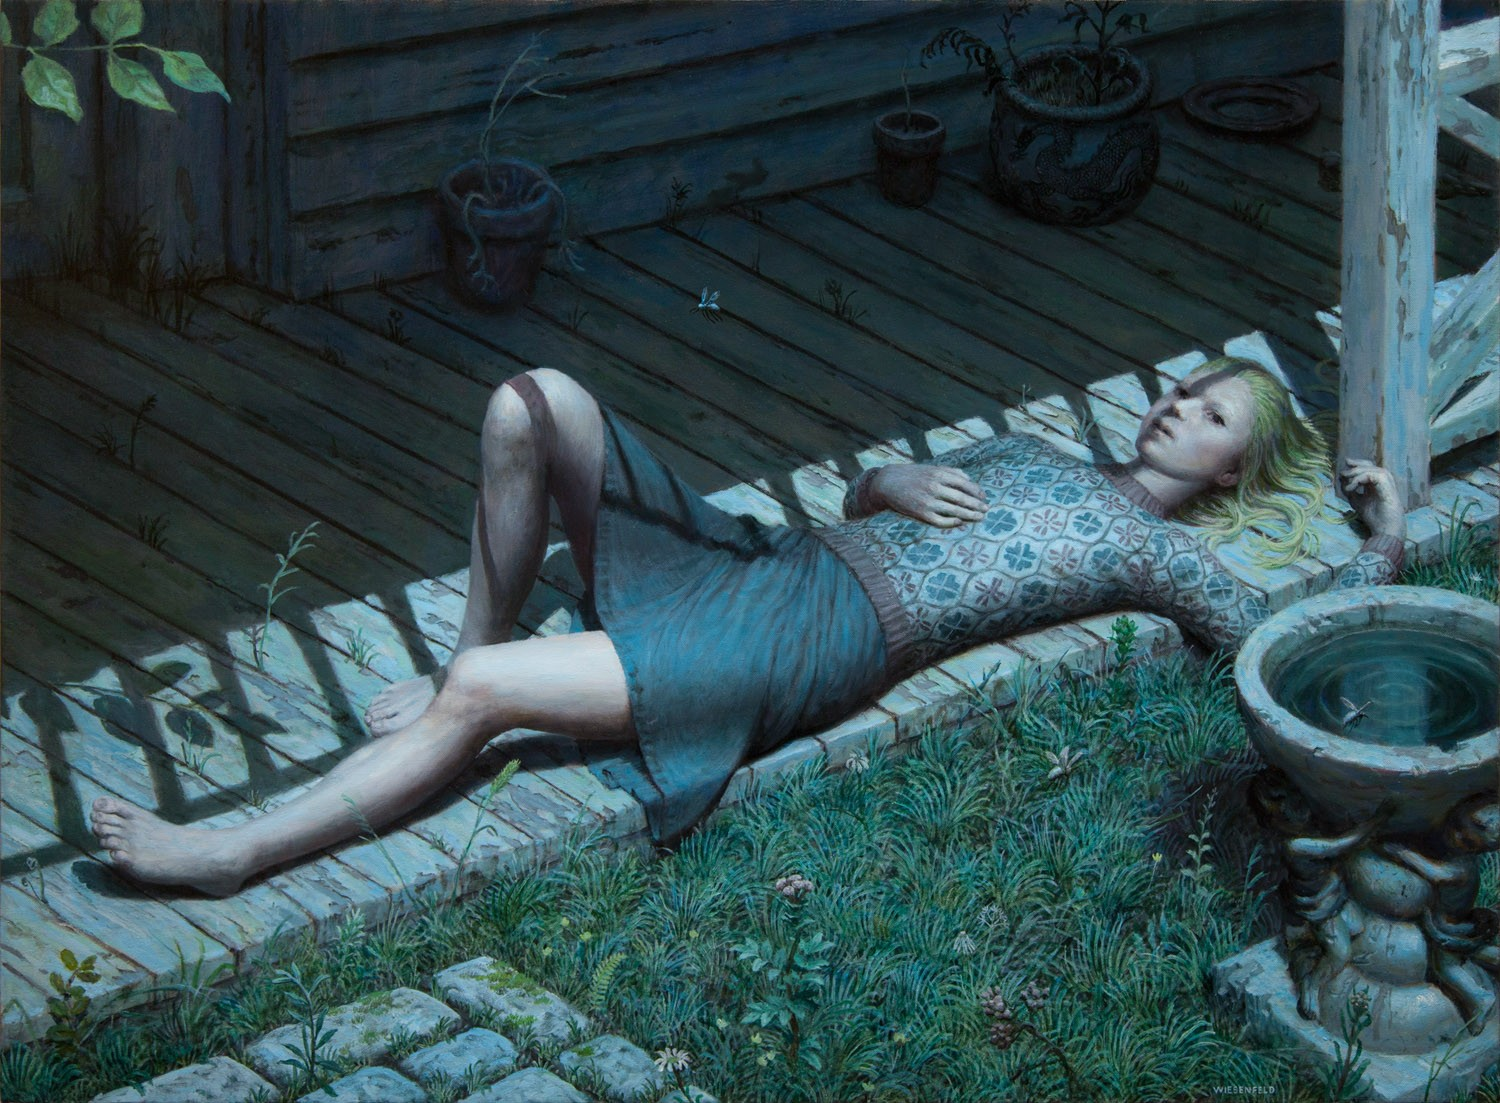 Quiet Scenes of Youthful Melancholy and Mystery by Aron Wiesenfeld